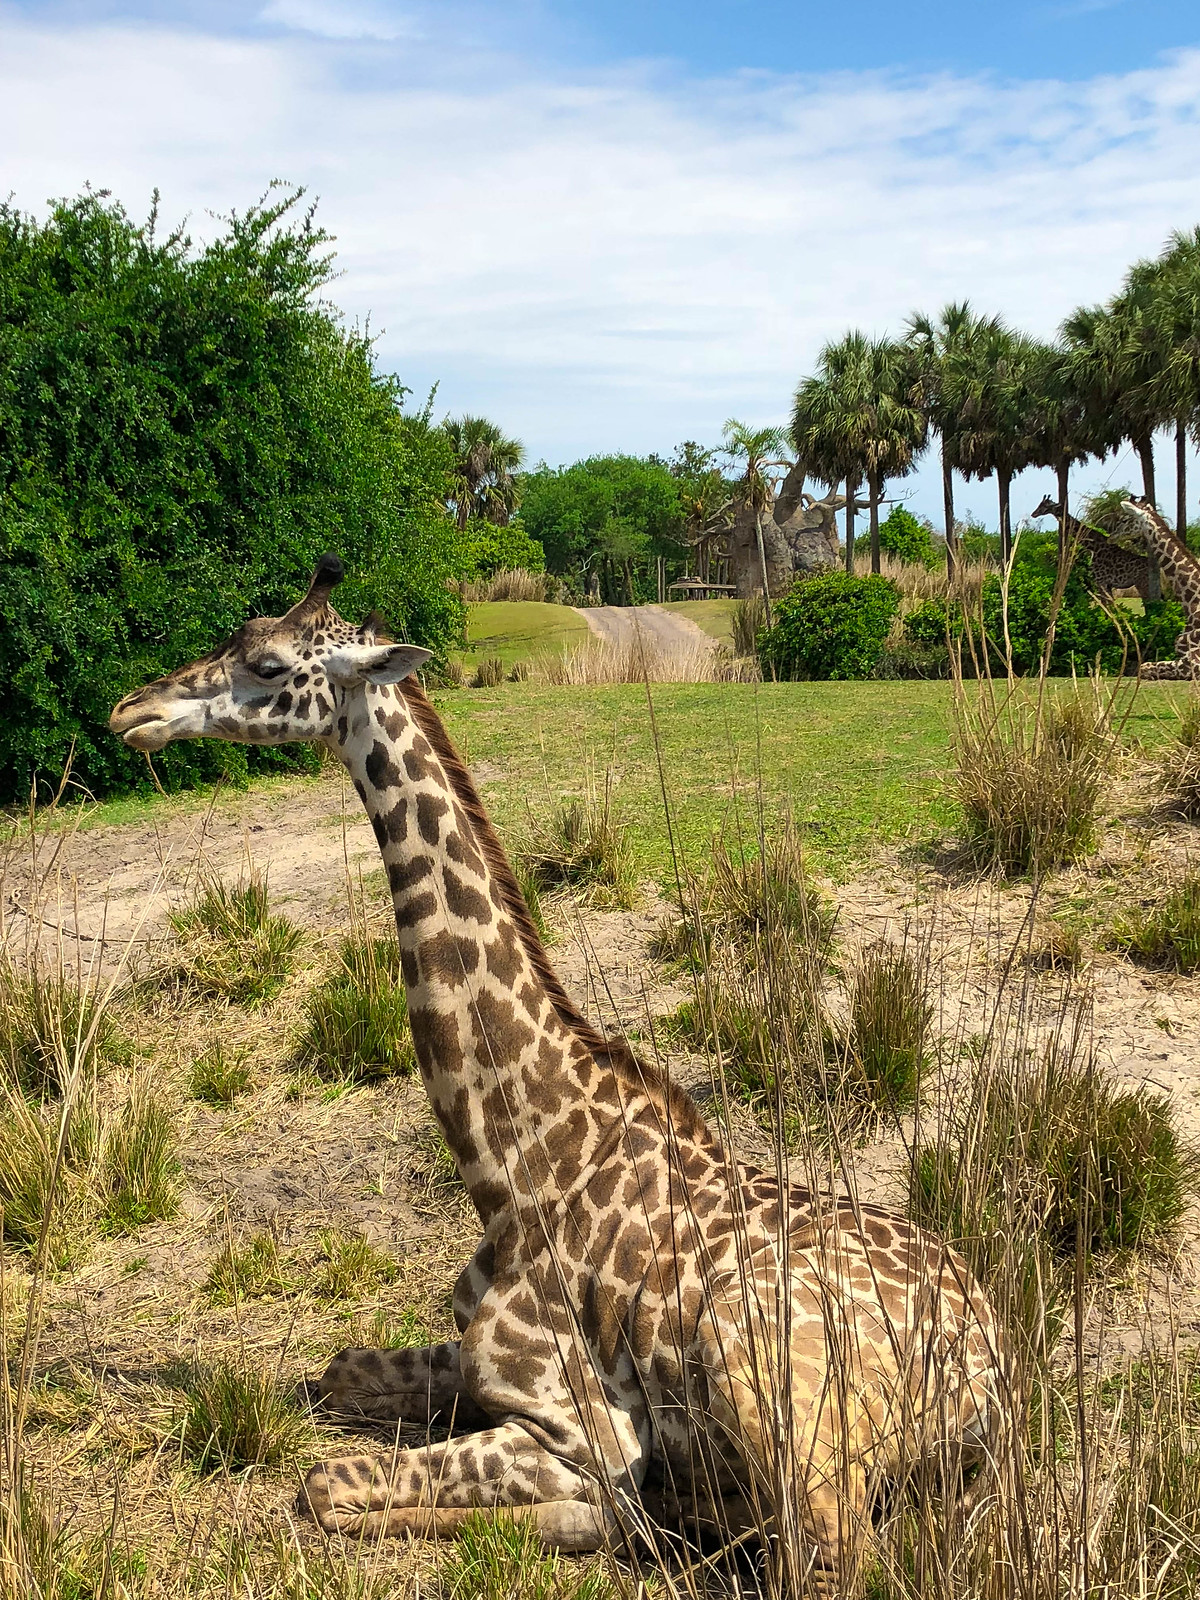 Kilimanjaro Safaris Giraffe Animal Kingdom Walt Disney World